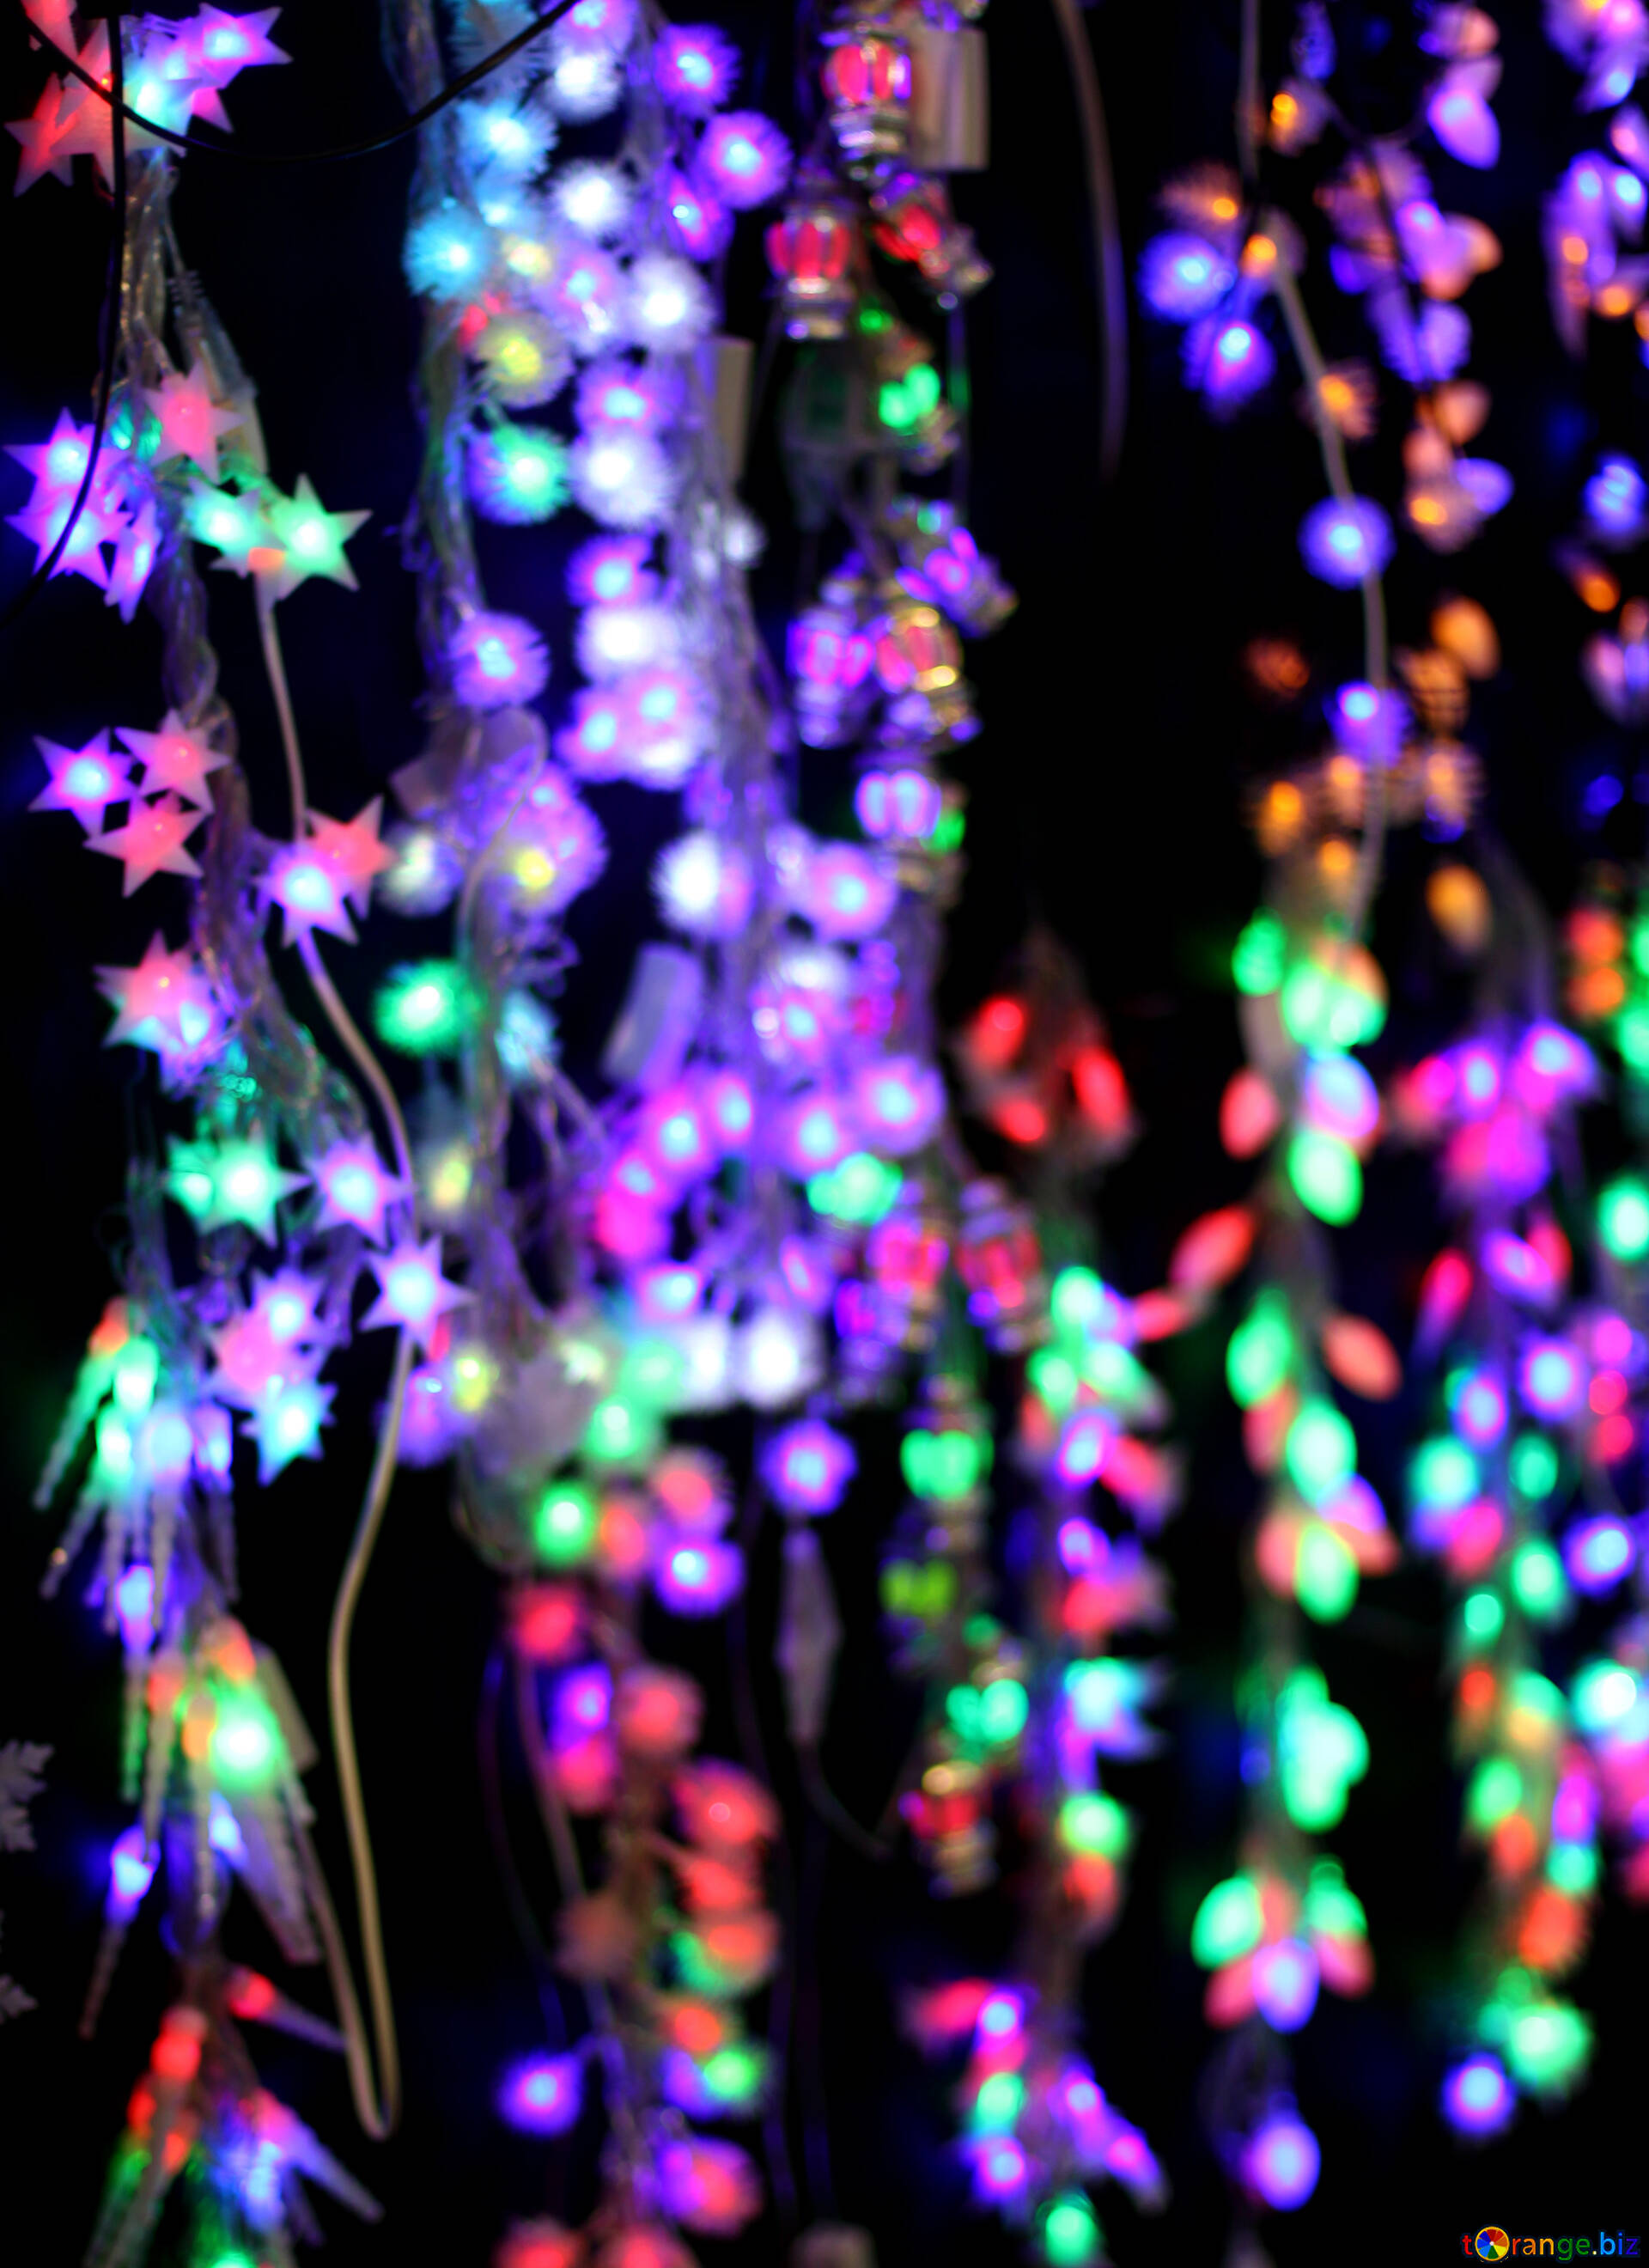 download free image colored lights christmas light background in hd wallpaper size 1920px